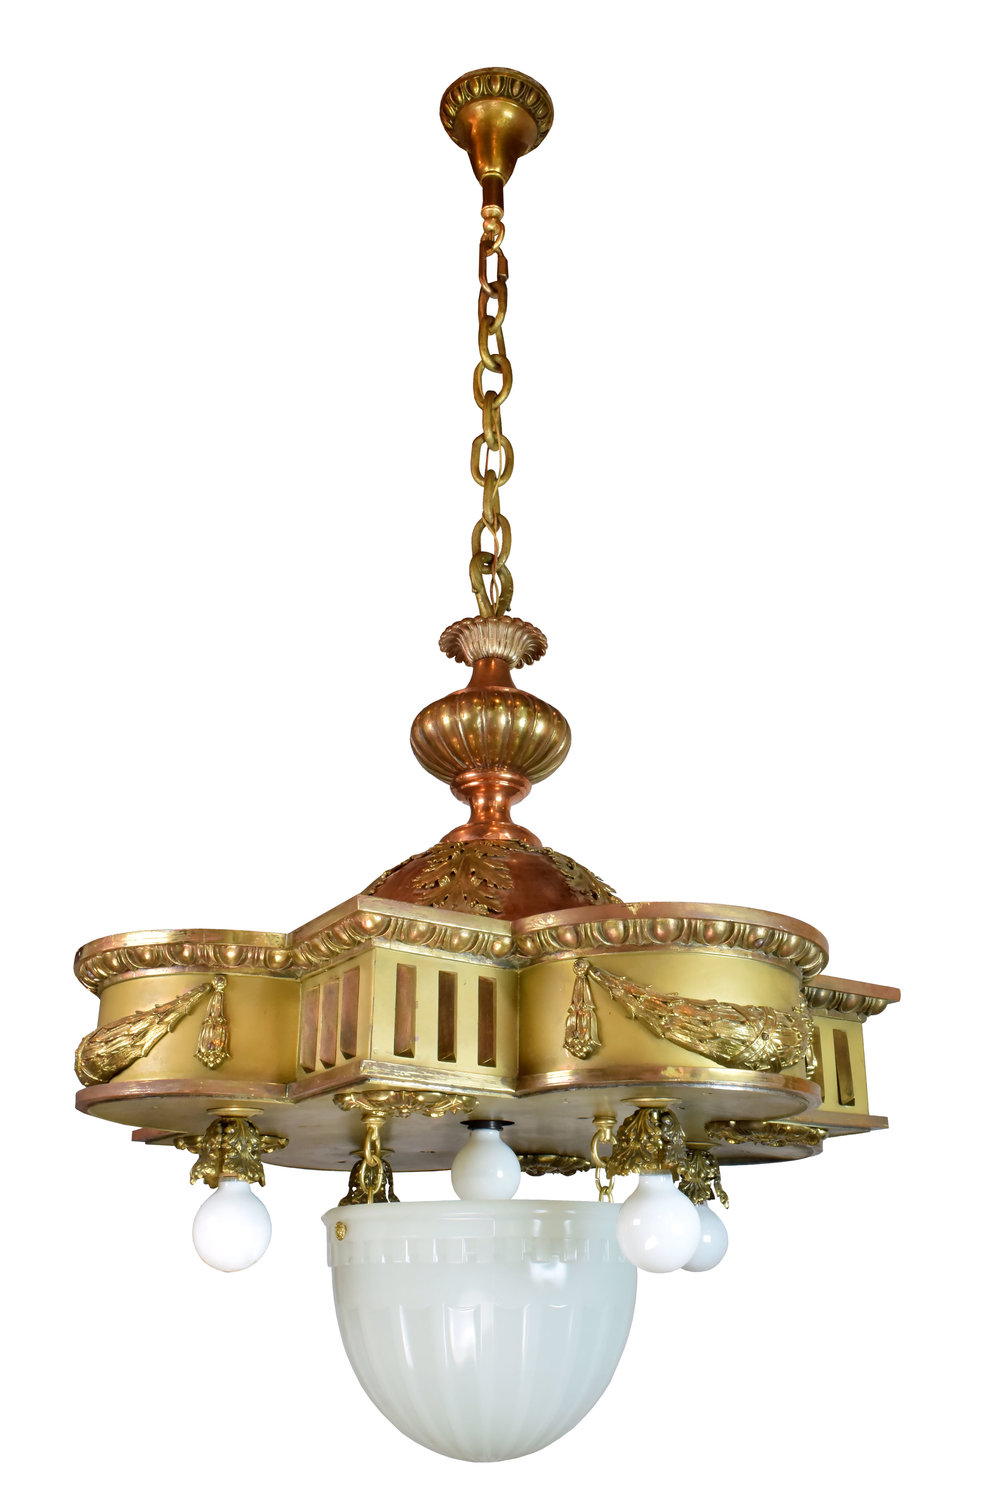 47166-quatrefoil-chandelier-lower-angle-full-view.jpg